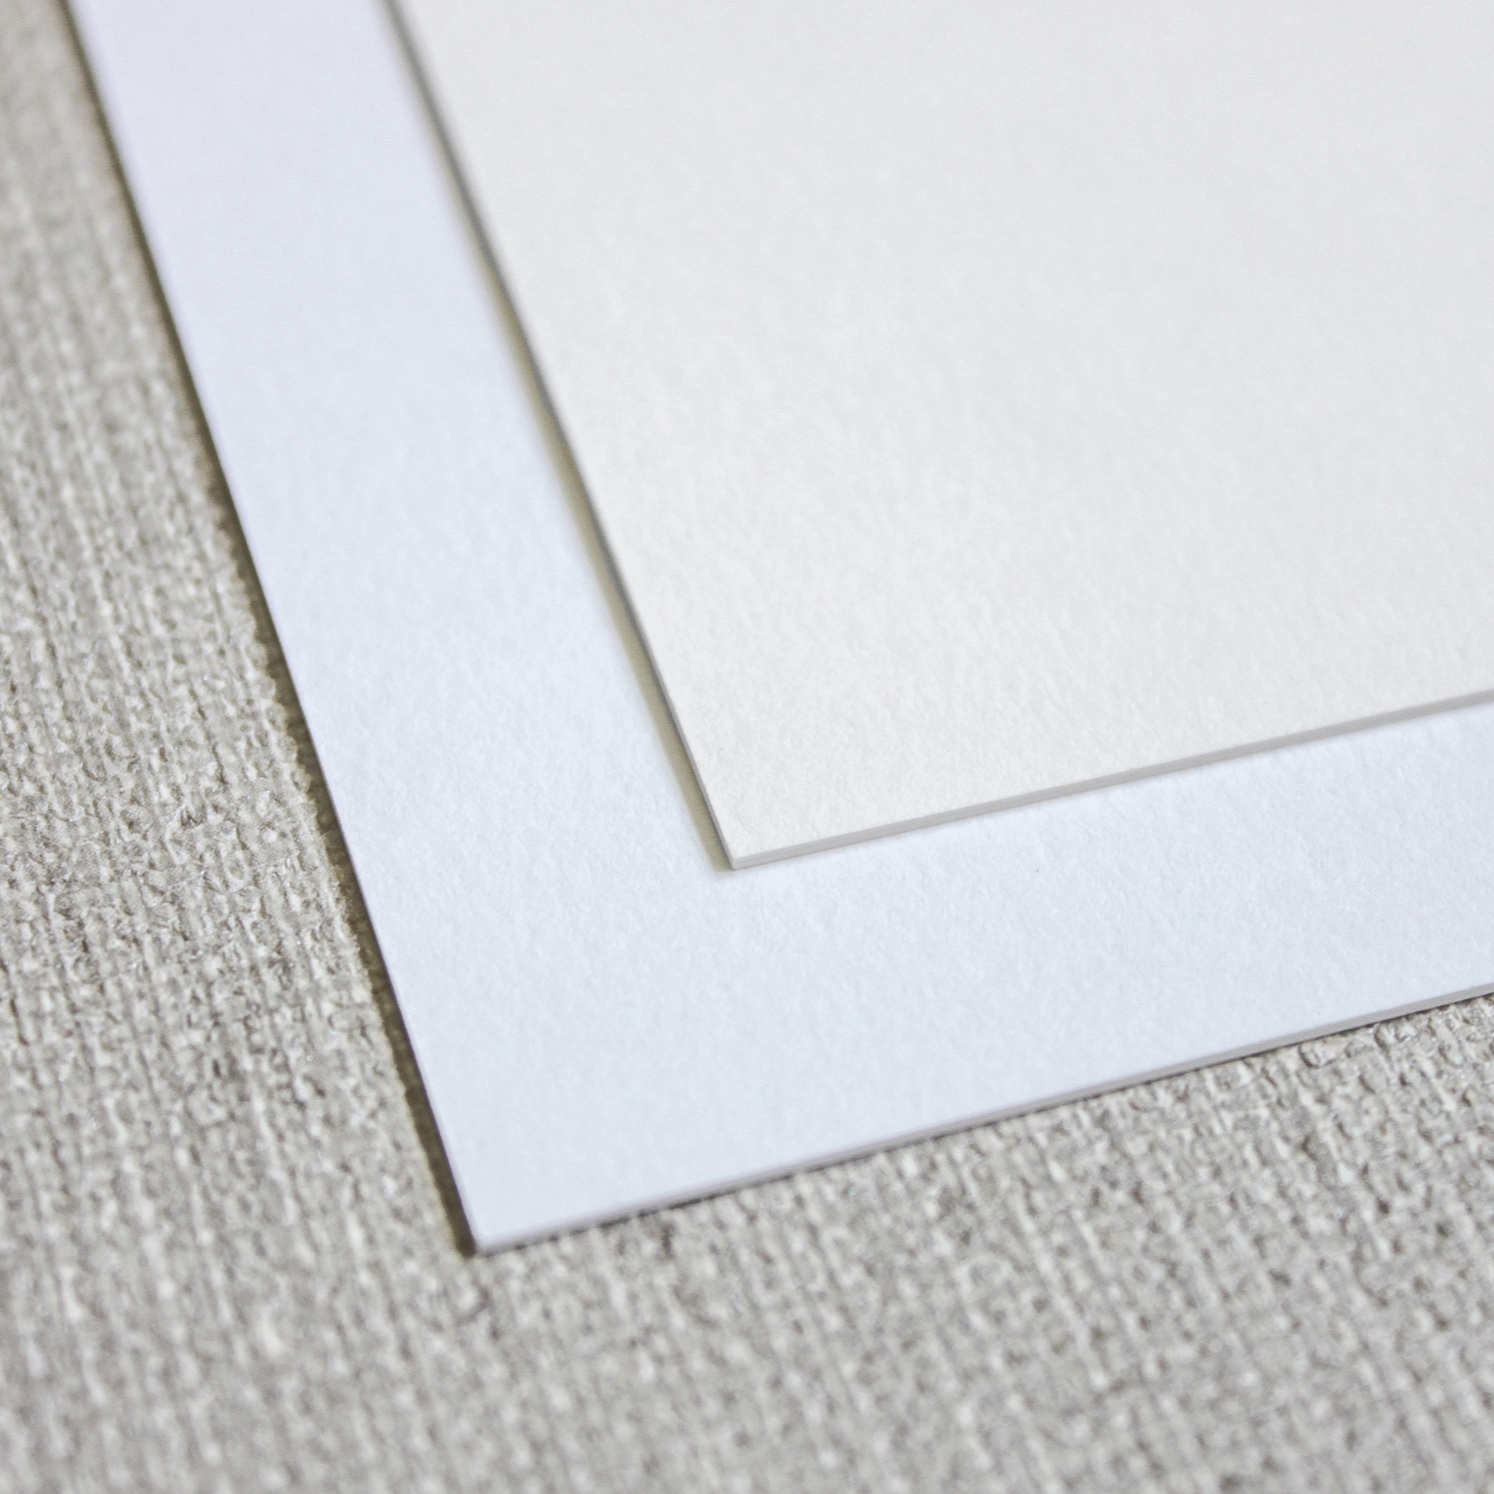 thick stock - Our thick stock for digital printing features a #240 eggshell paper in ultra white or standard white. Eggshell paper creates a subtle textured finish.